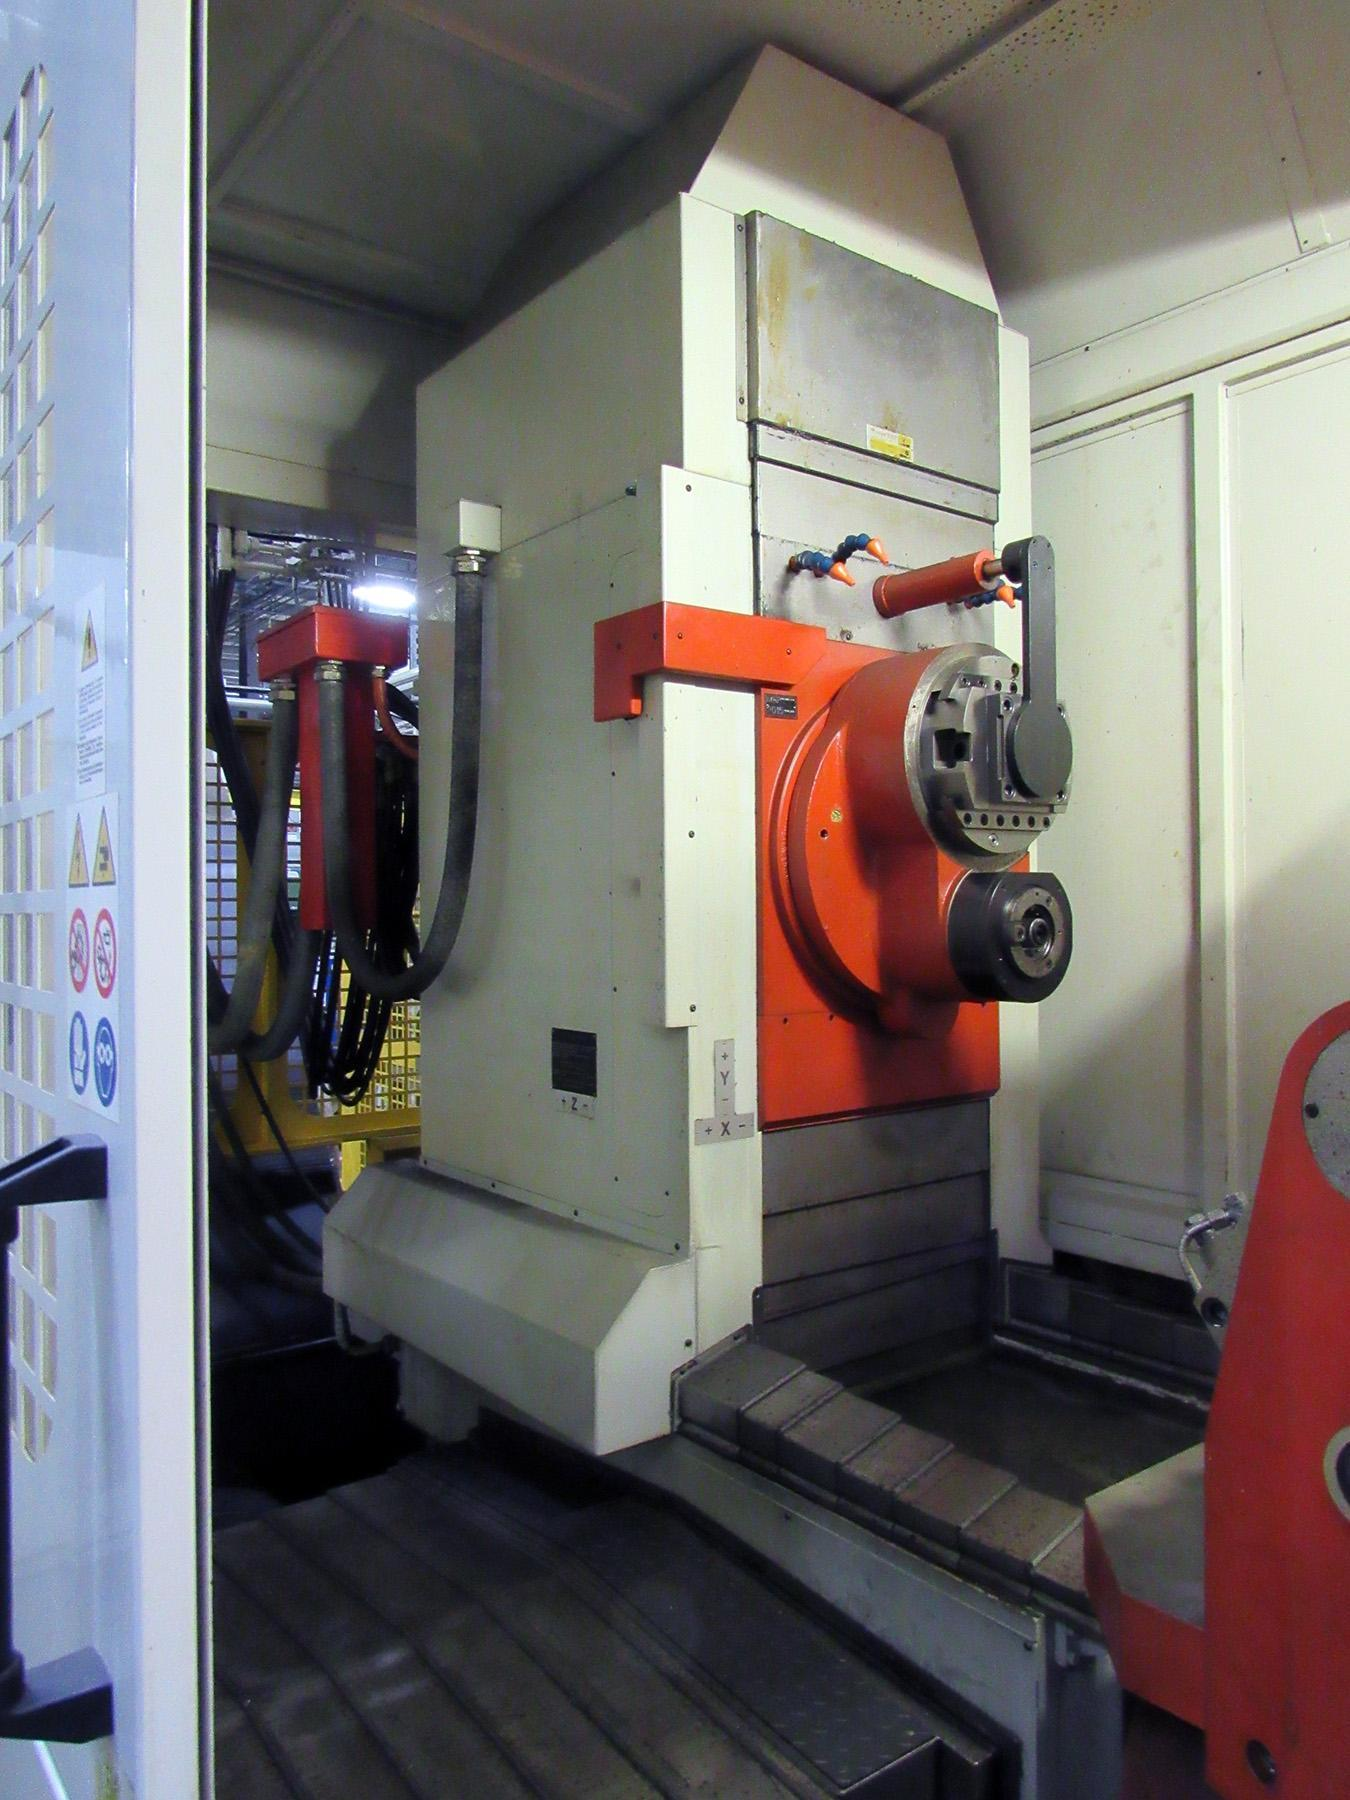 GT TREVISAN MODEL DS300/70C 8 AXIS CNC HORIZONTAL MACHINING AND TURNING CENTER